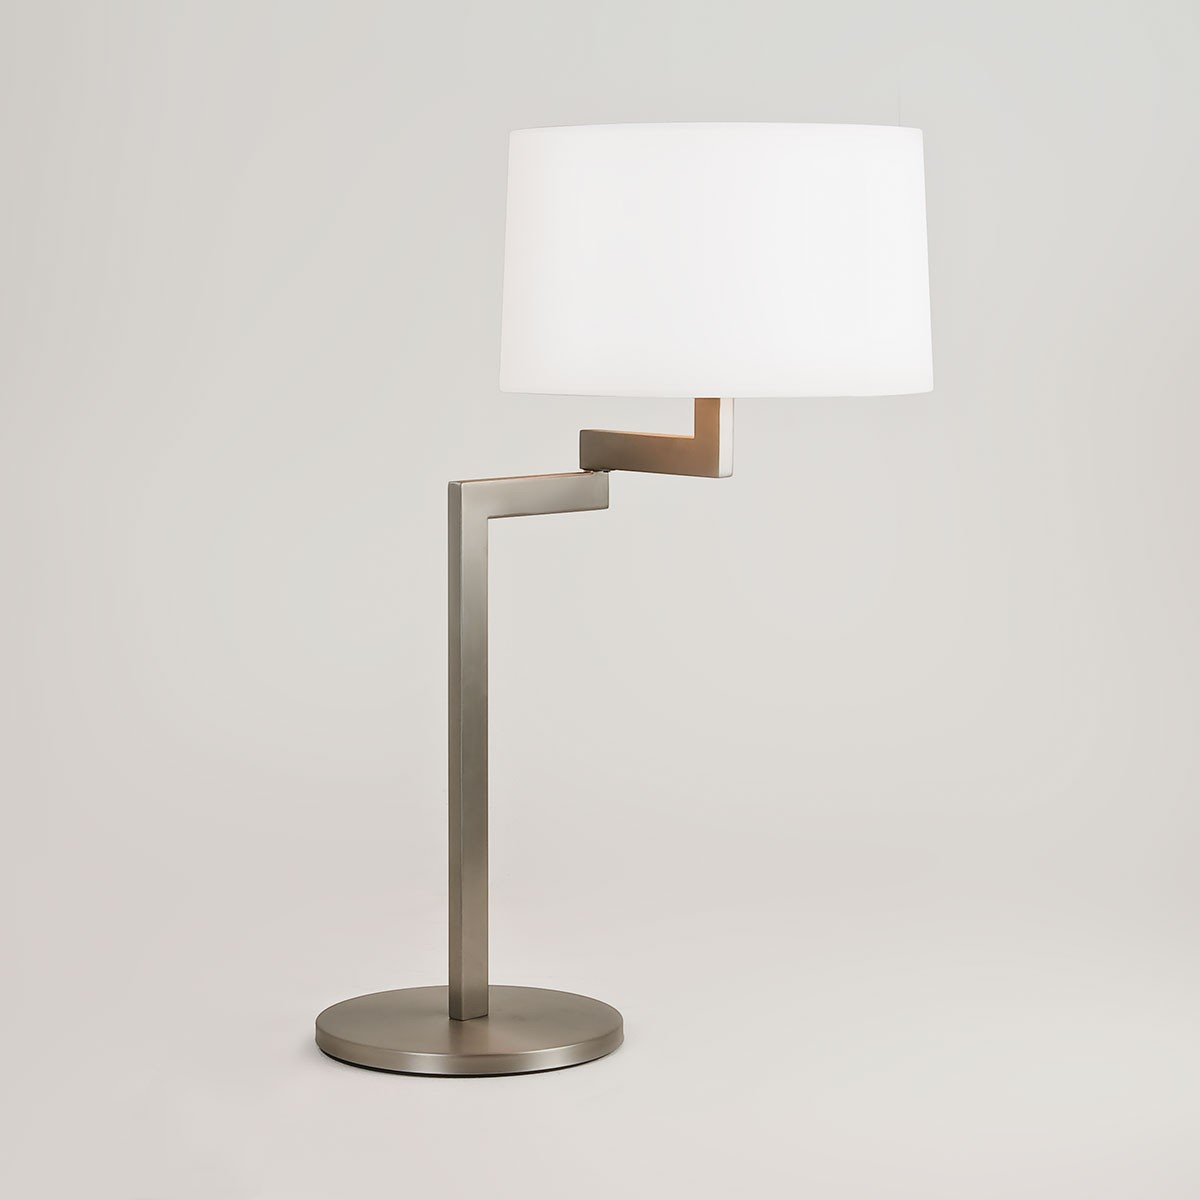 Astro momo table brushed stainless steel table lamp at uk electrical astro momo table brushed stainless steel table lamp aloadofball Images